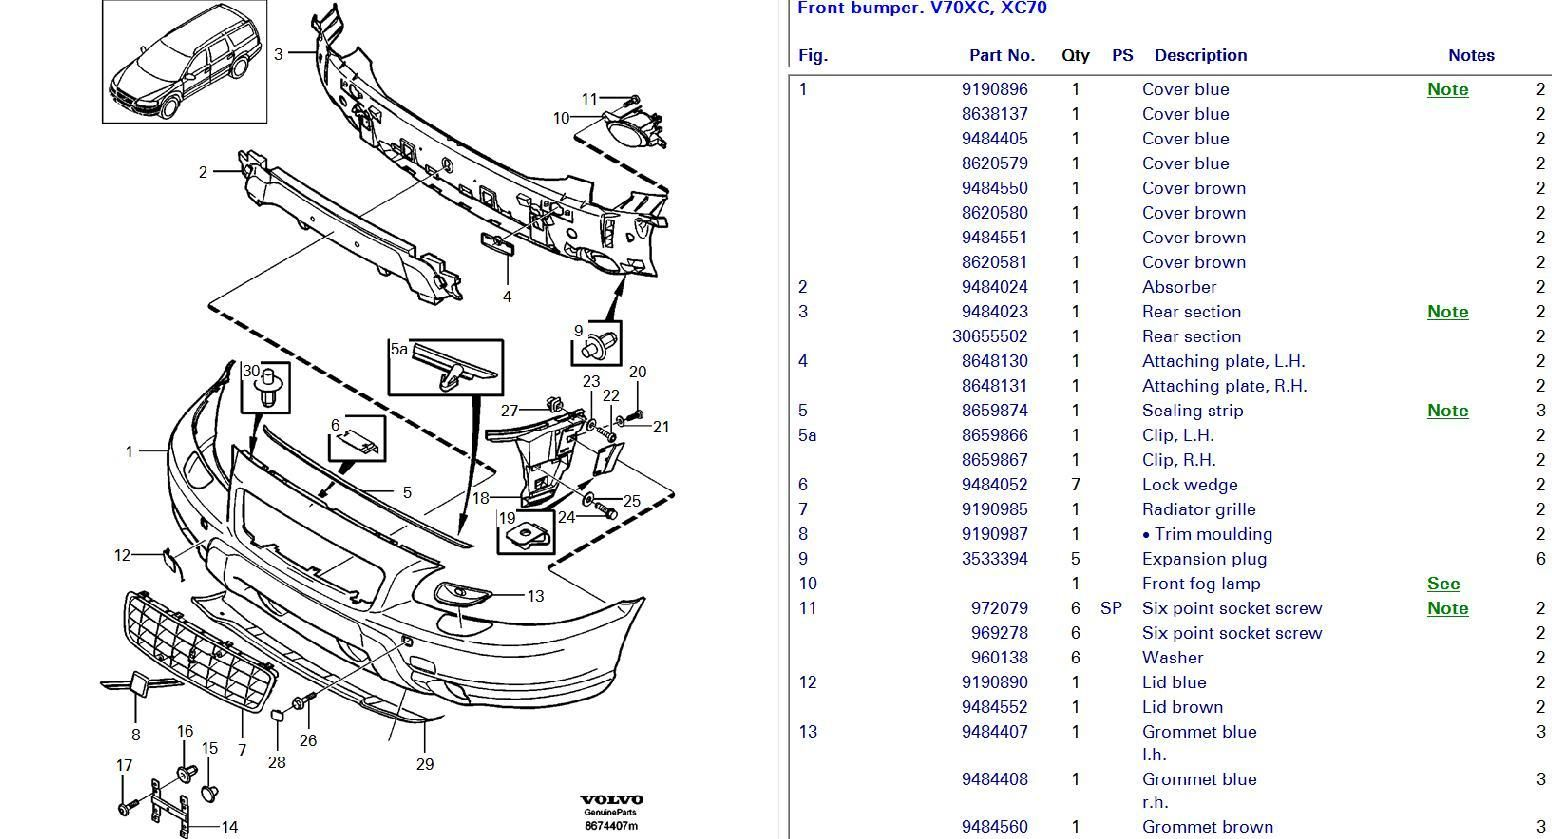 service manual  how to remove front bumper 2006 volvo xc70